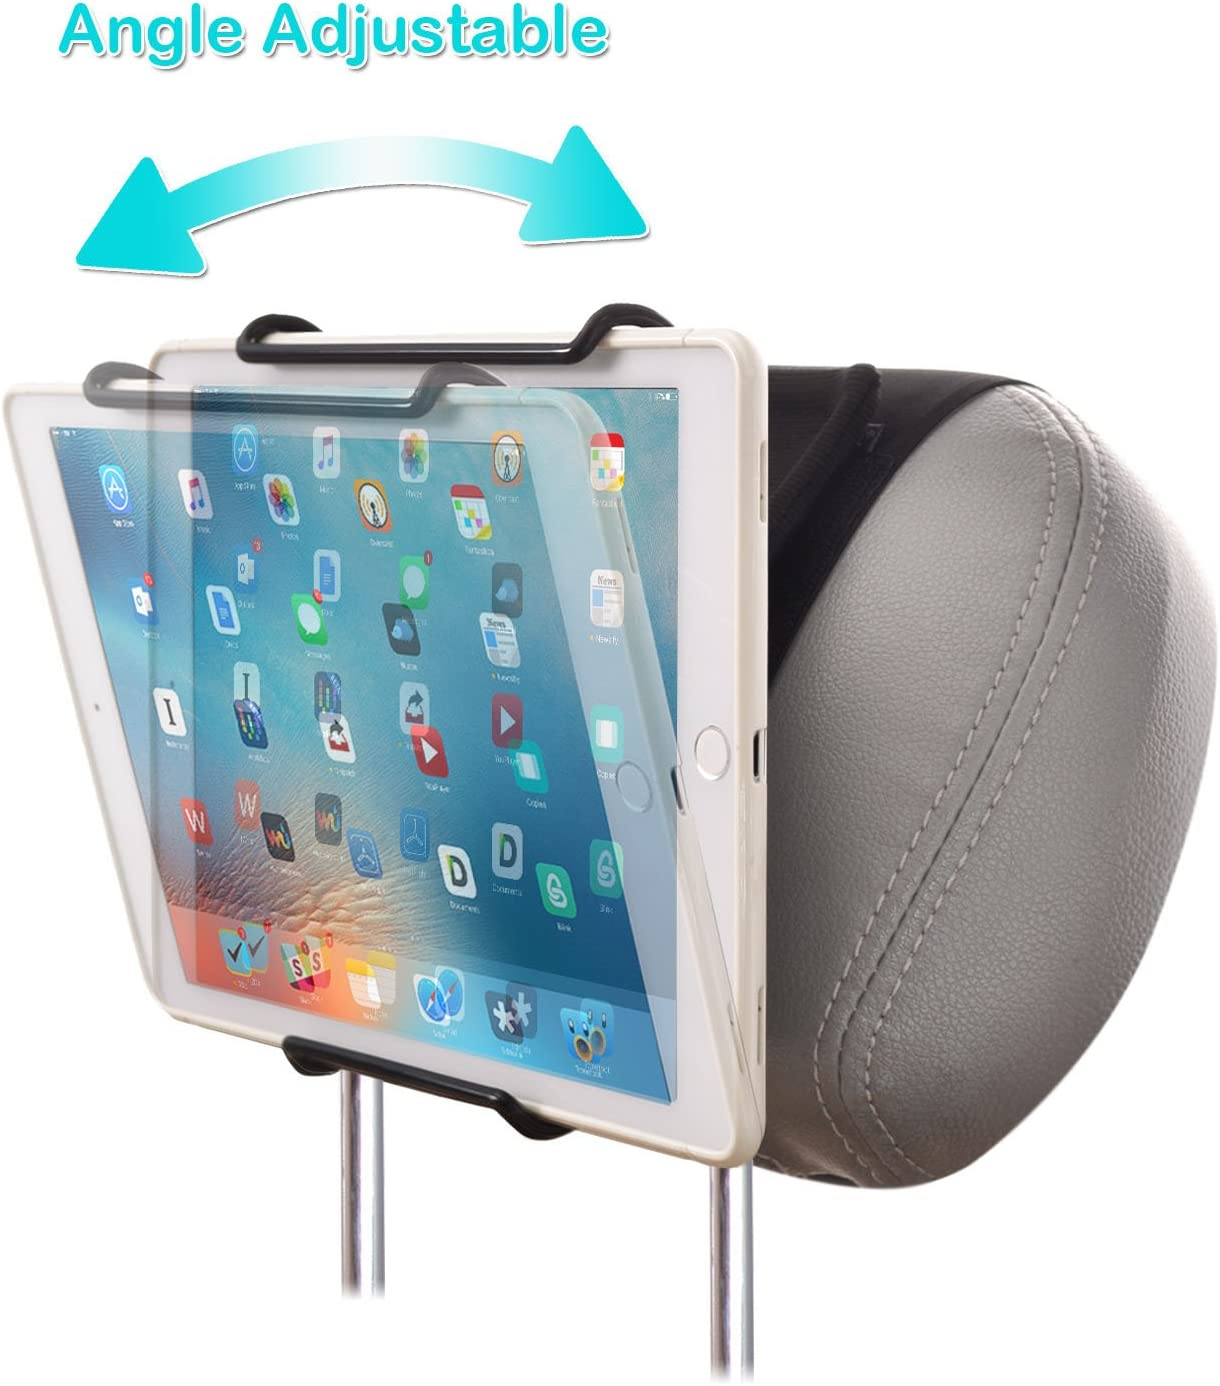 for Use with iPads Samsung Tablets and More WANPOOL Universal Car Headrest Mount Holder with Angle-Adjustable Clamp